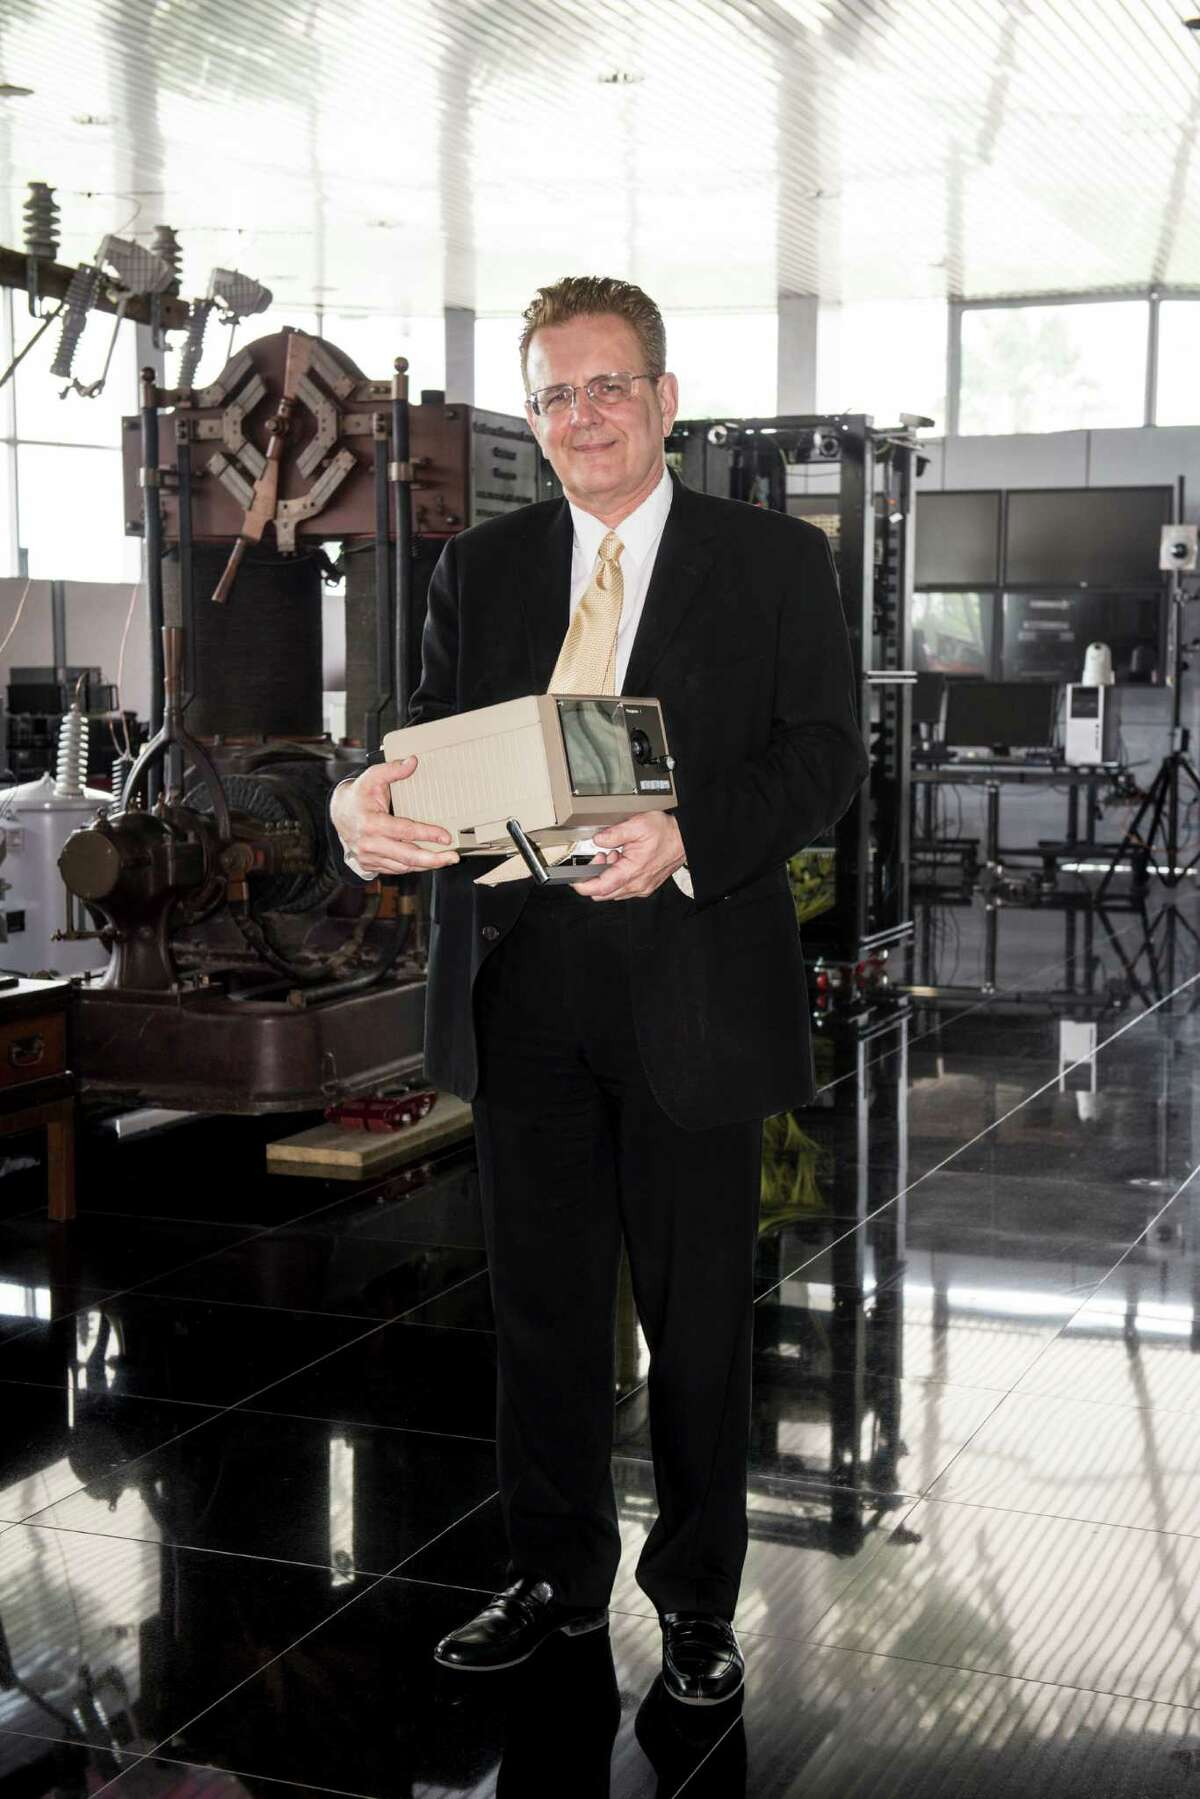 San Antonio tech pioneer David Monroe holds an early version of an image transmission system, the invention on which he based his company, Photophone Ltd., in 1983.